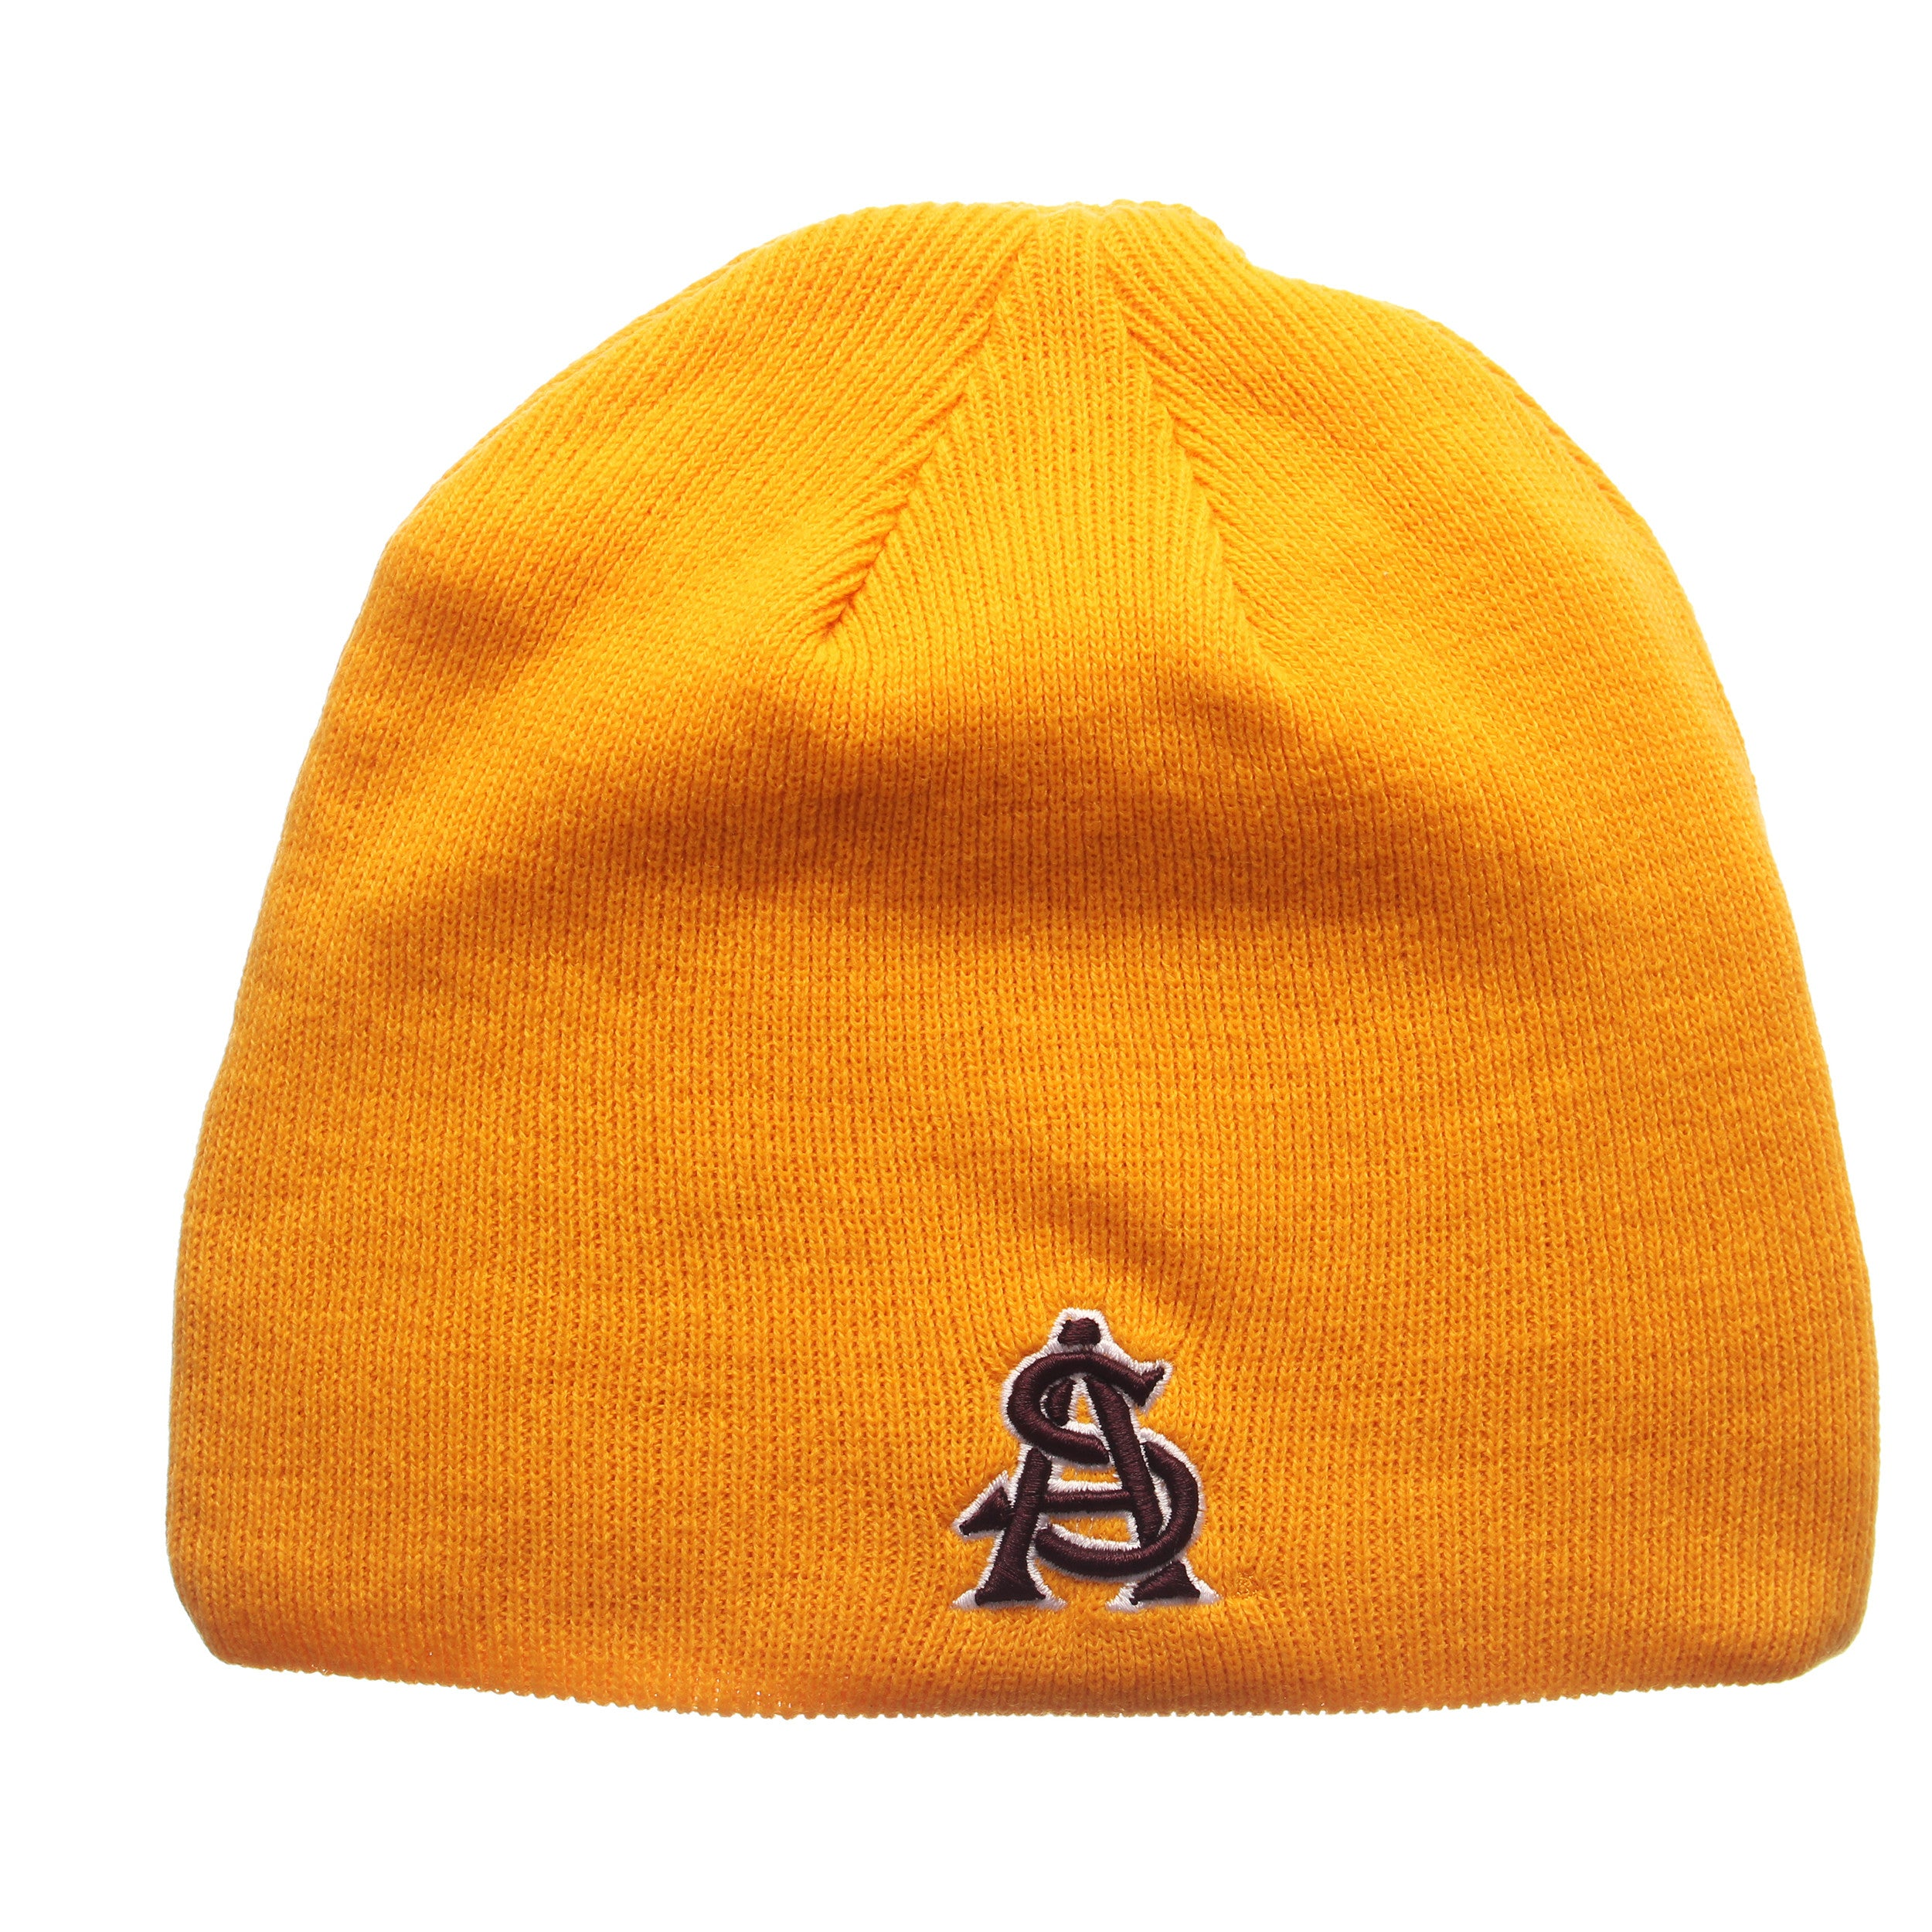 Arizona State University Edge Knit (Short) (AS) Gold Knit Adjustable KNIT hats by Zephyr